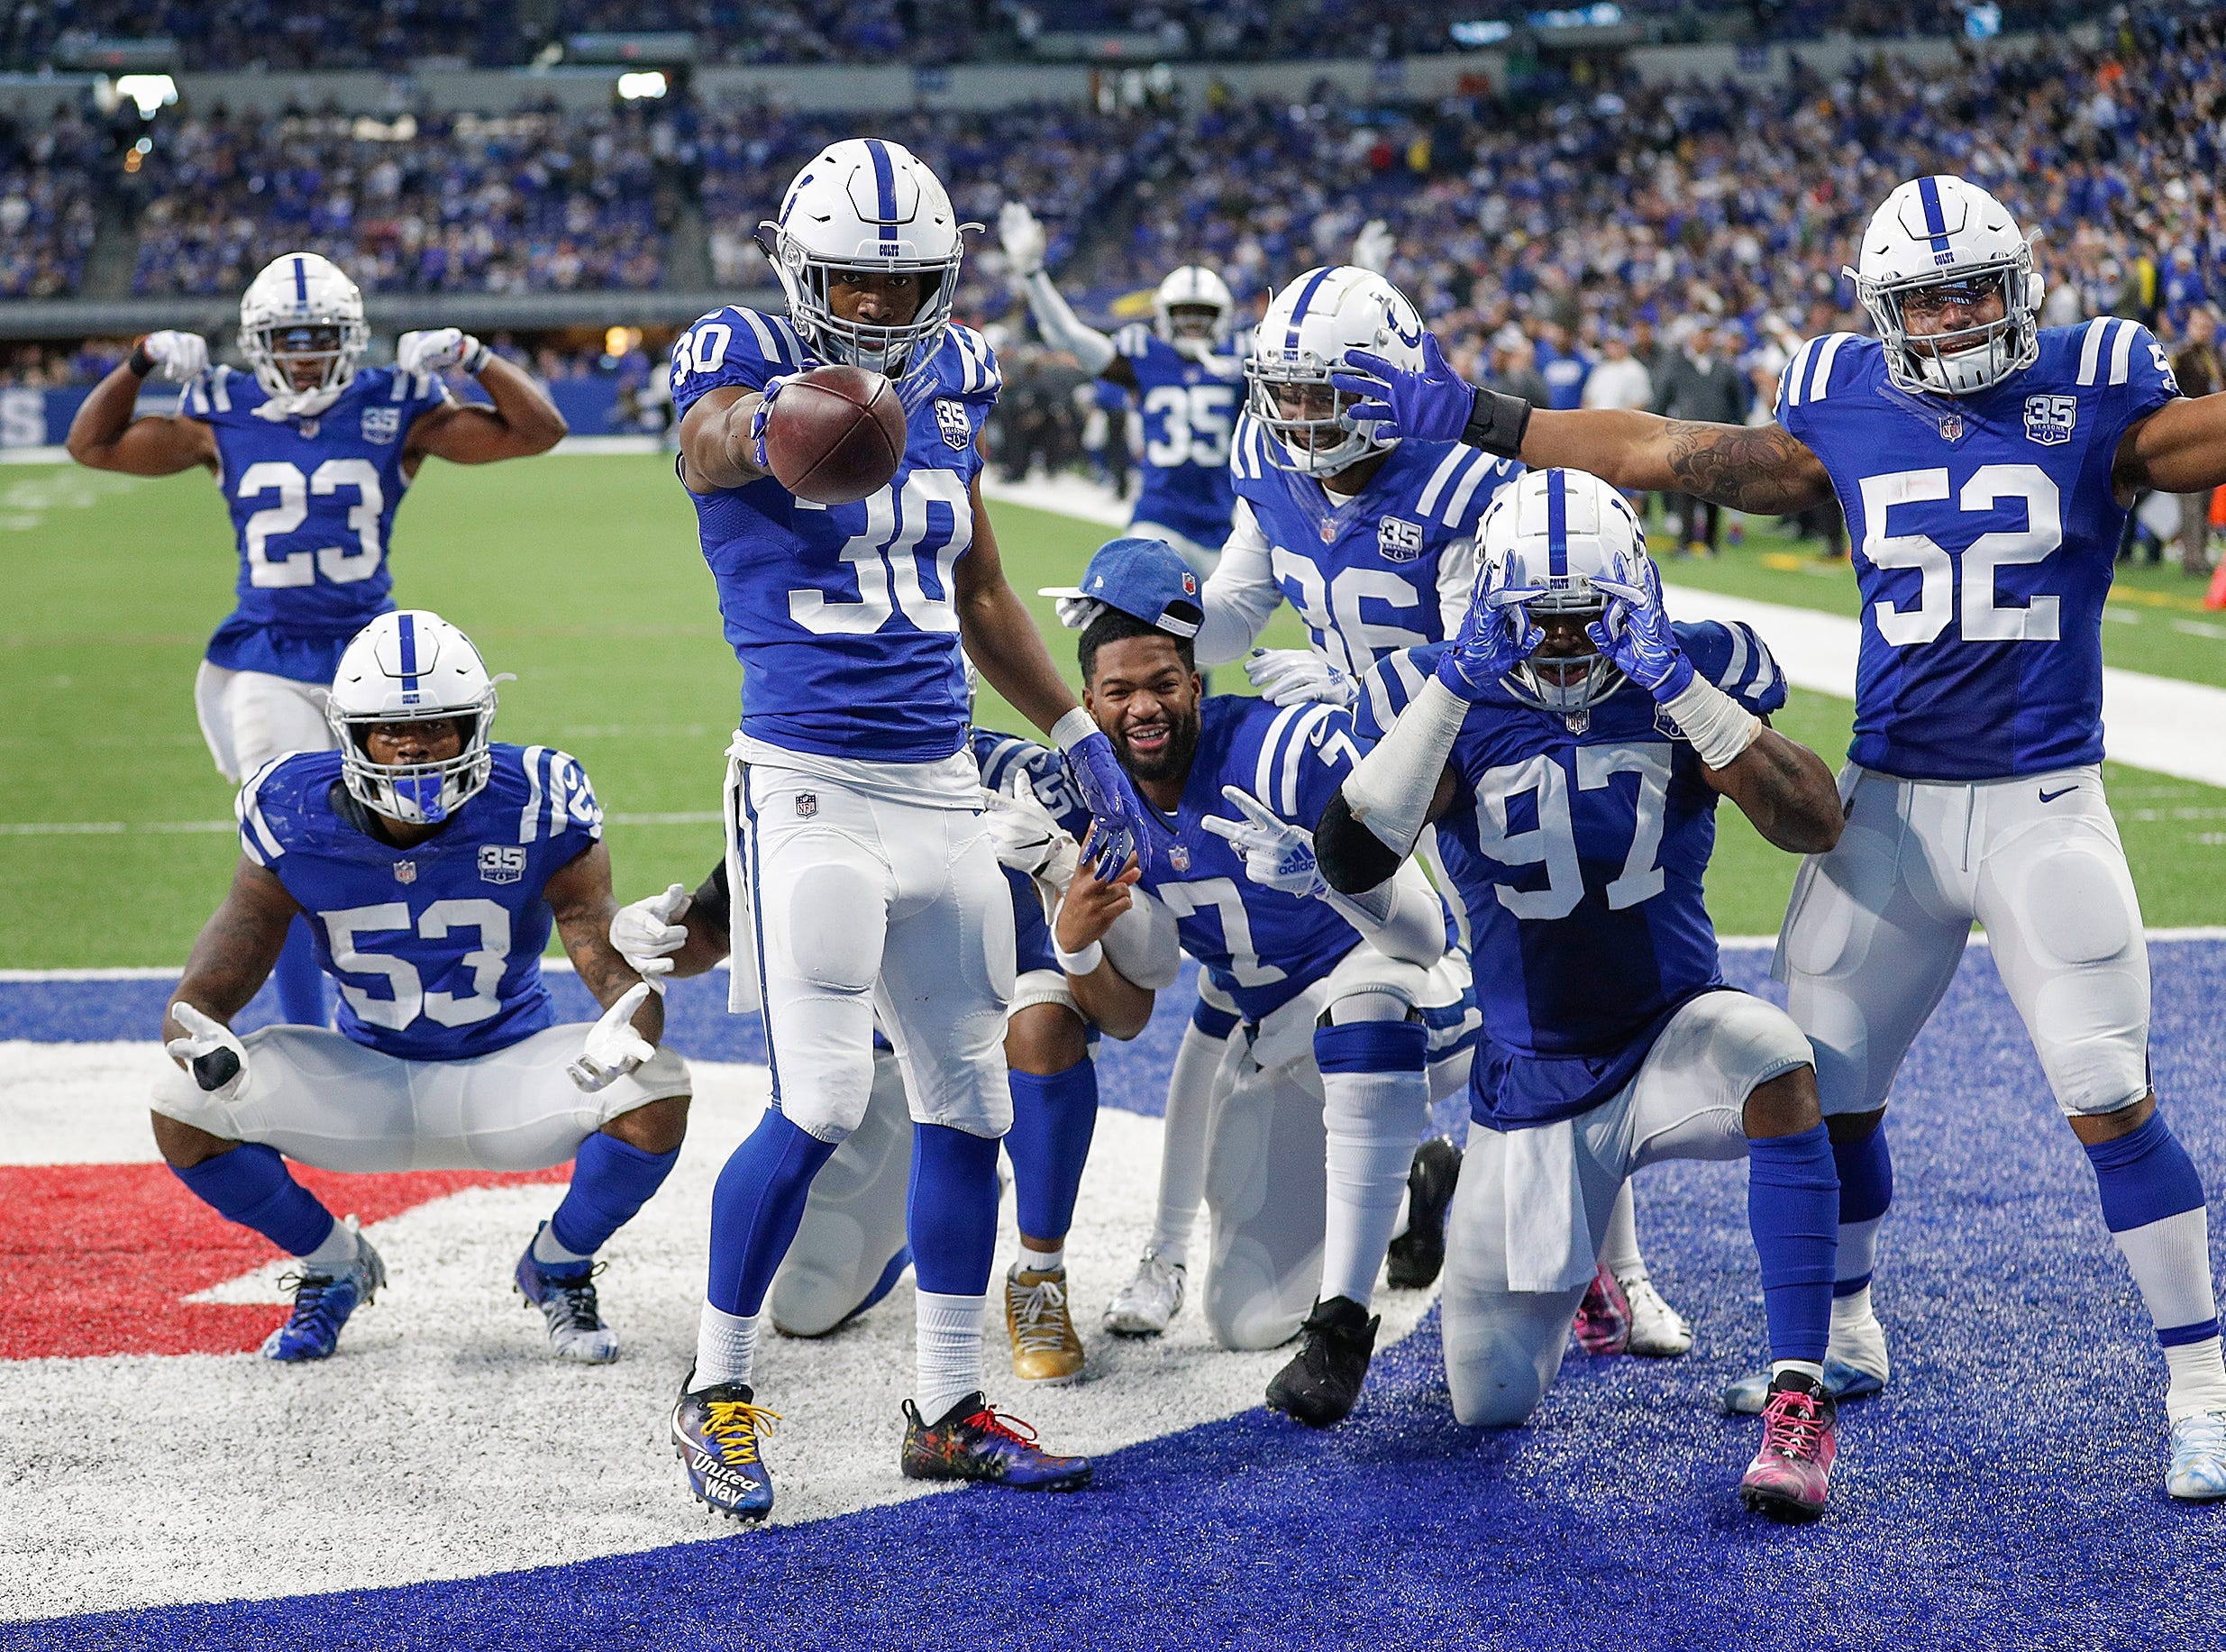 Indianapolis Colts defensive back George Odum (30) celebrates his interception with his teammates late in the fourth quarter of their game at Lucas Oil Stadium on Sunday, Dec. 16, 2018. The Colts shut-out the Cowboys 23-0.